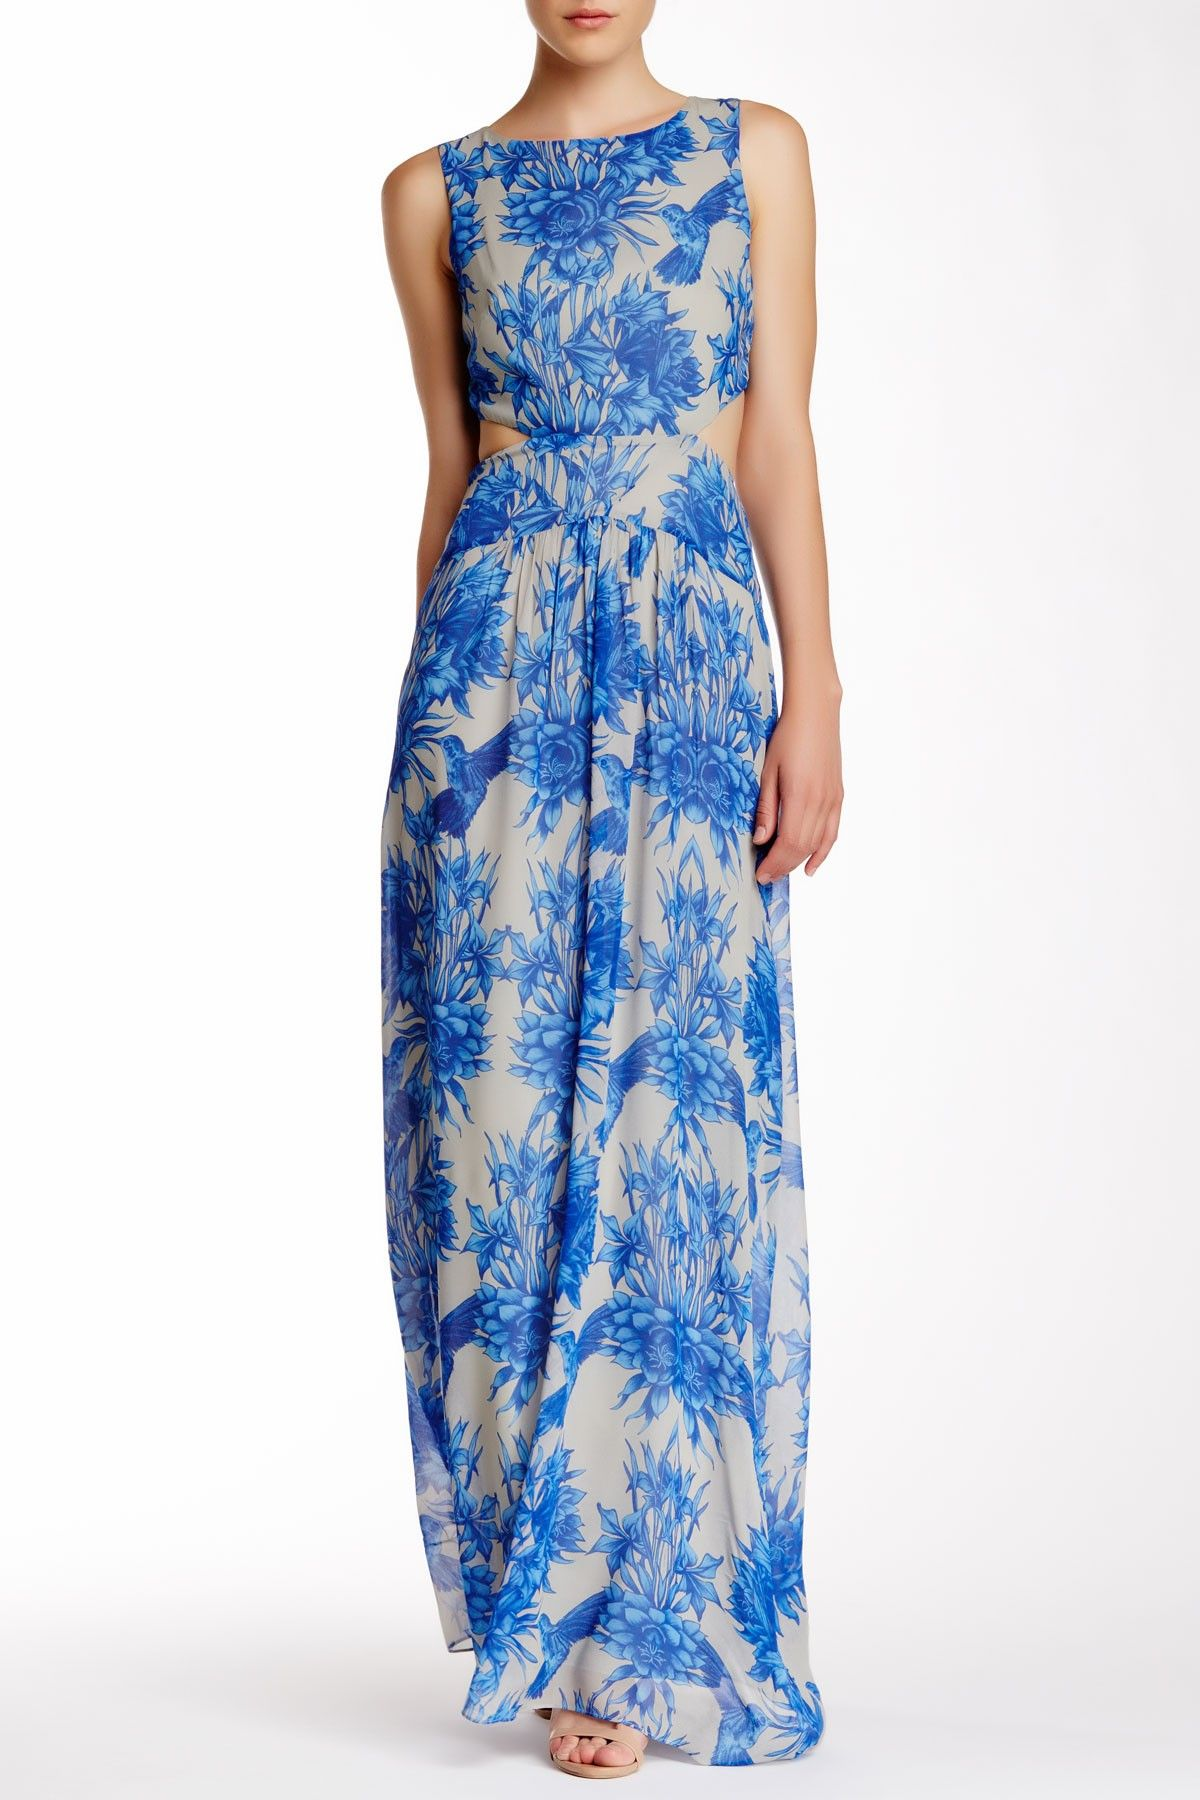 Queen Of The Night Chinoiserie Dress   Nicole miller, Queens and ...